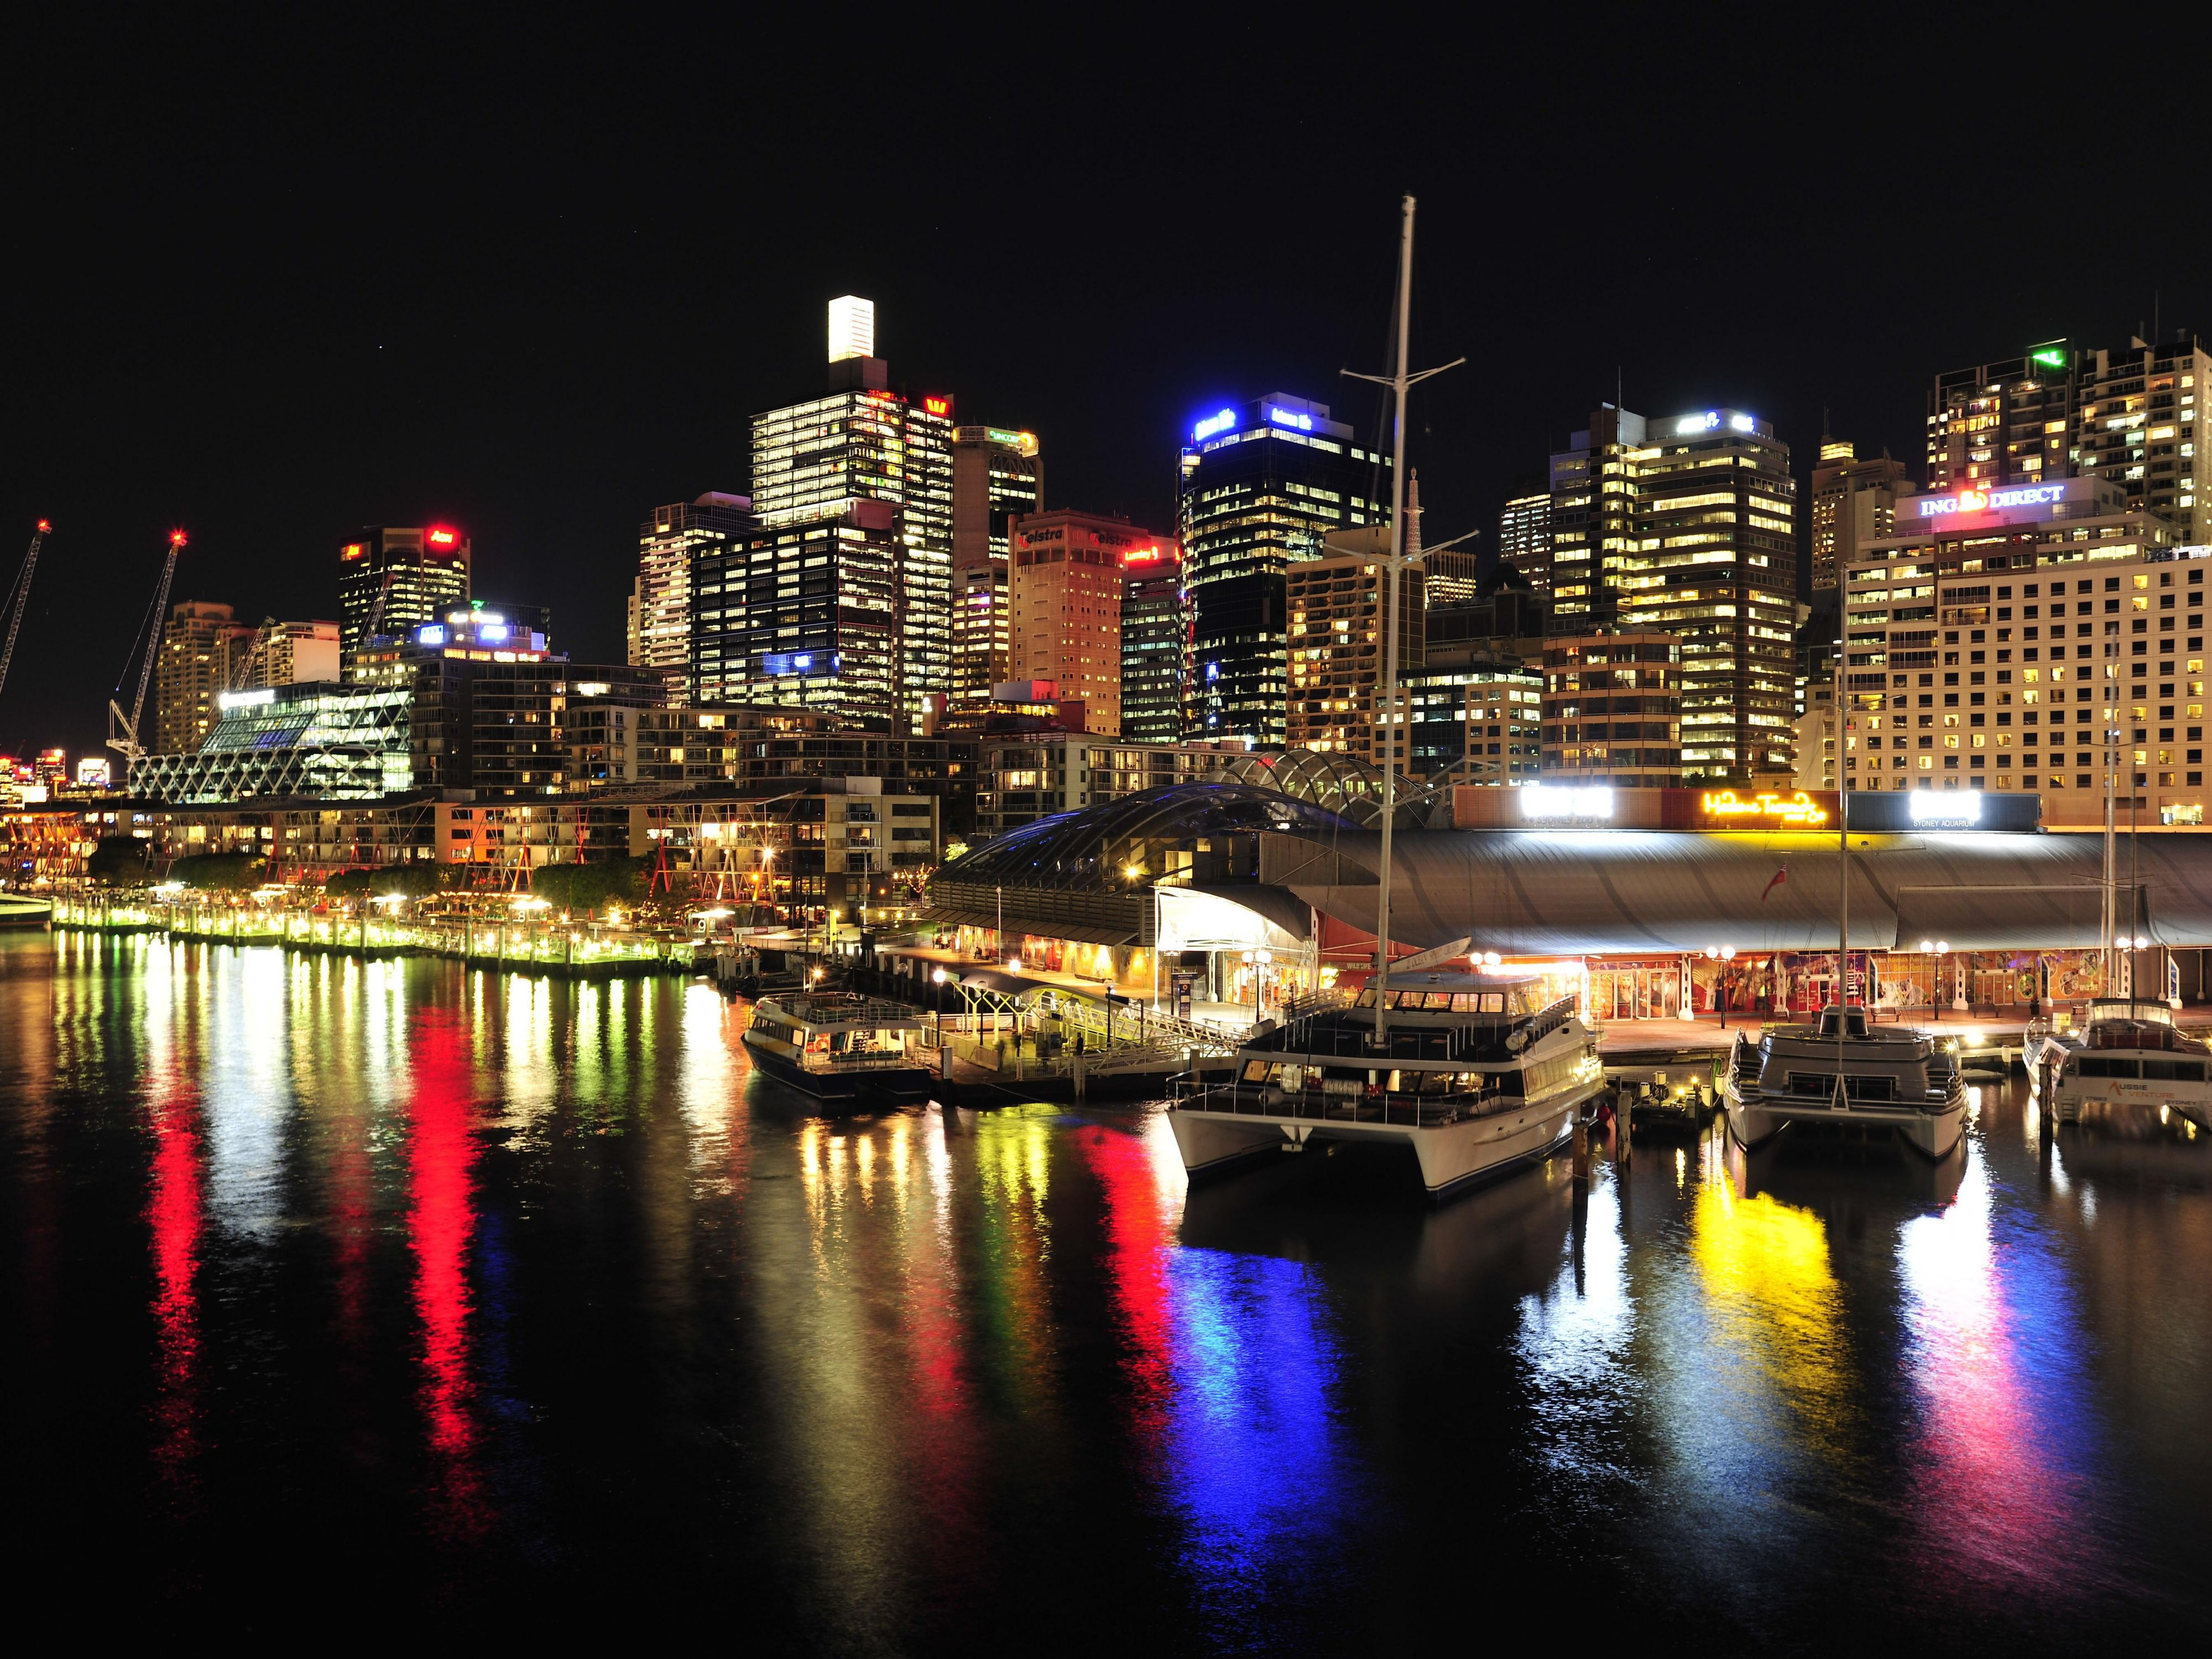 Middle Darling Harbour at night